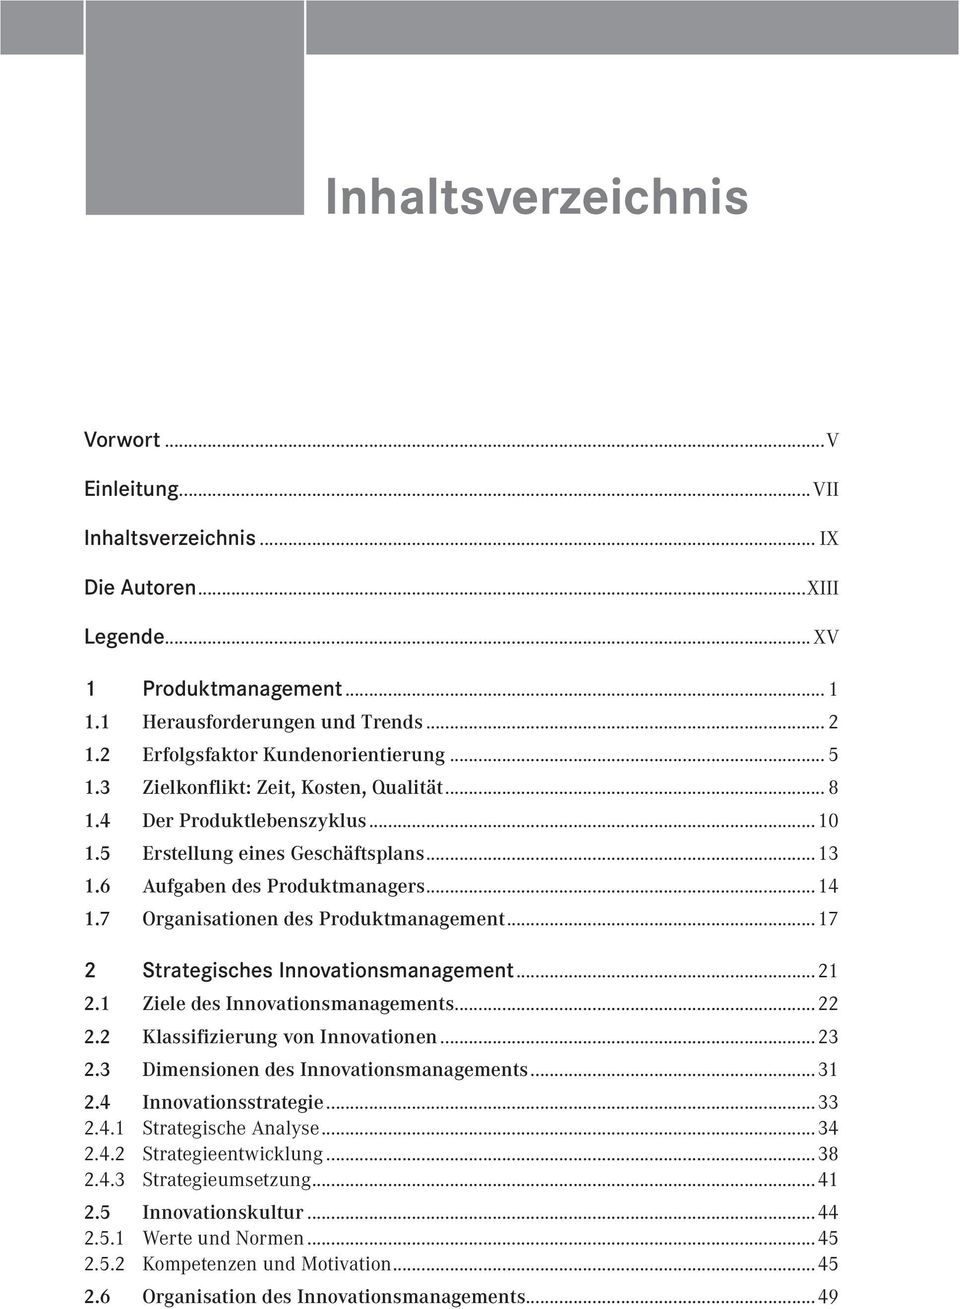 ..17 2 Strategisches Innovationsmanagement...21 2.1 Ziele des Innovationsmanagements...22 2.2 Klassifizierung von Innovationen...23 2.3 Dimensionen des Innovationsmanagements...31 2.